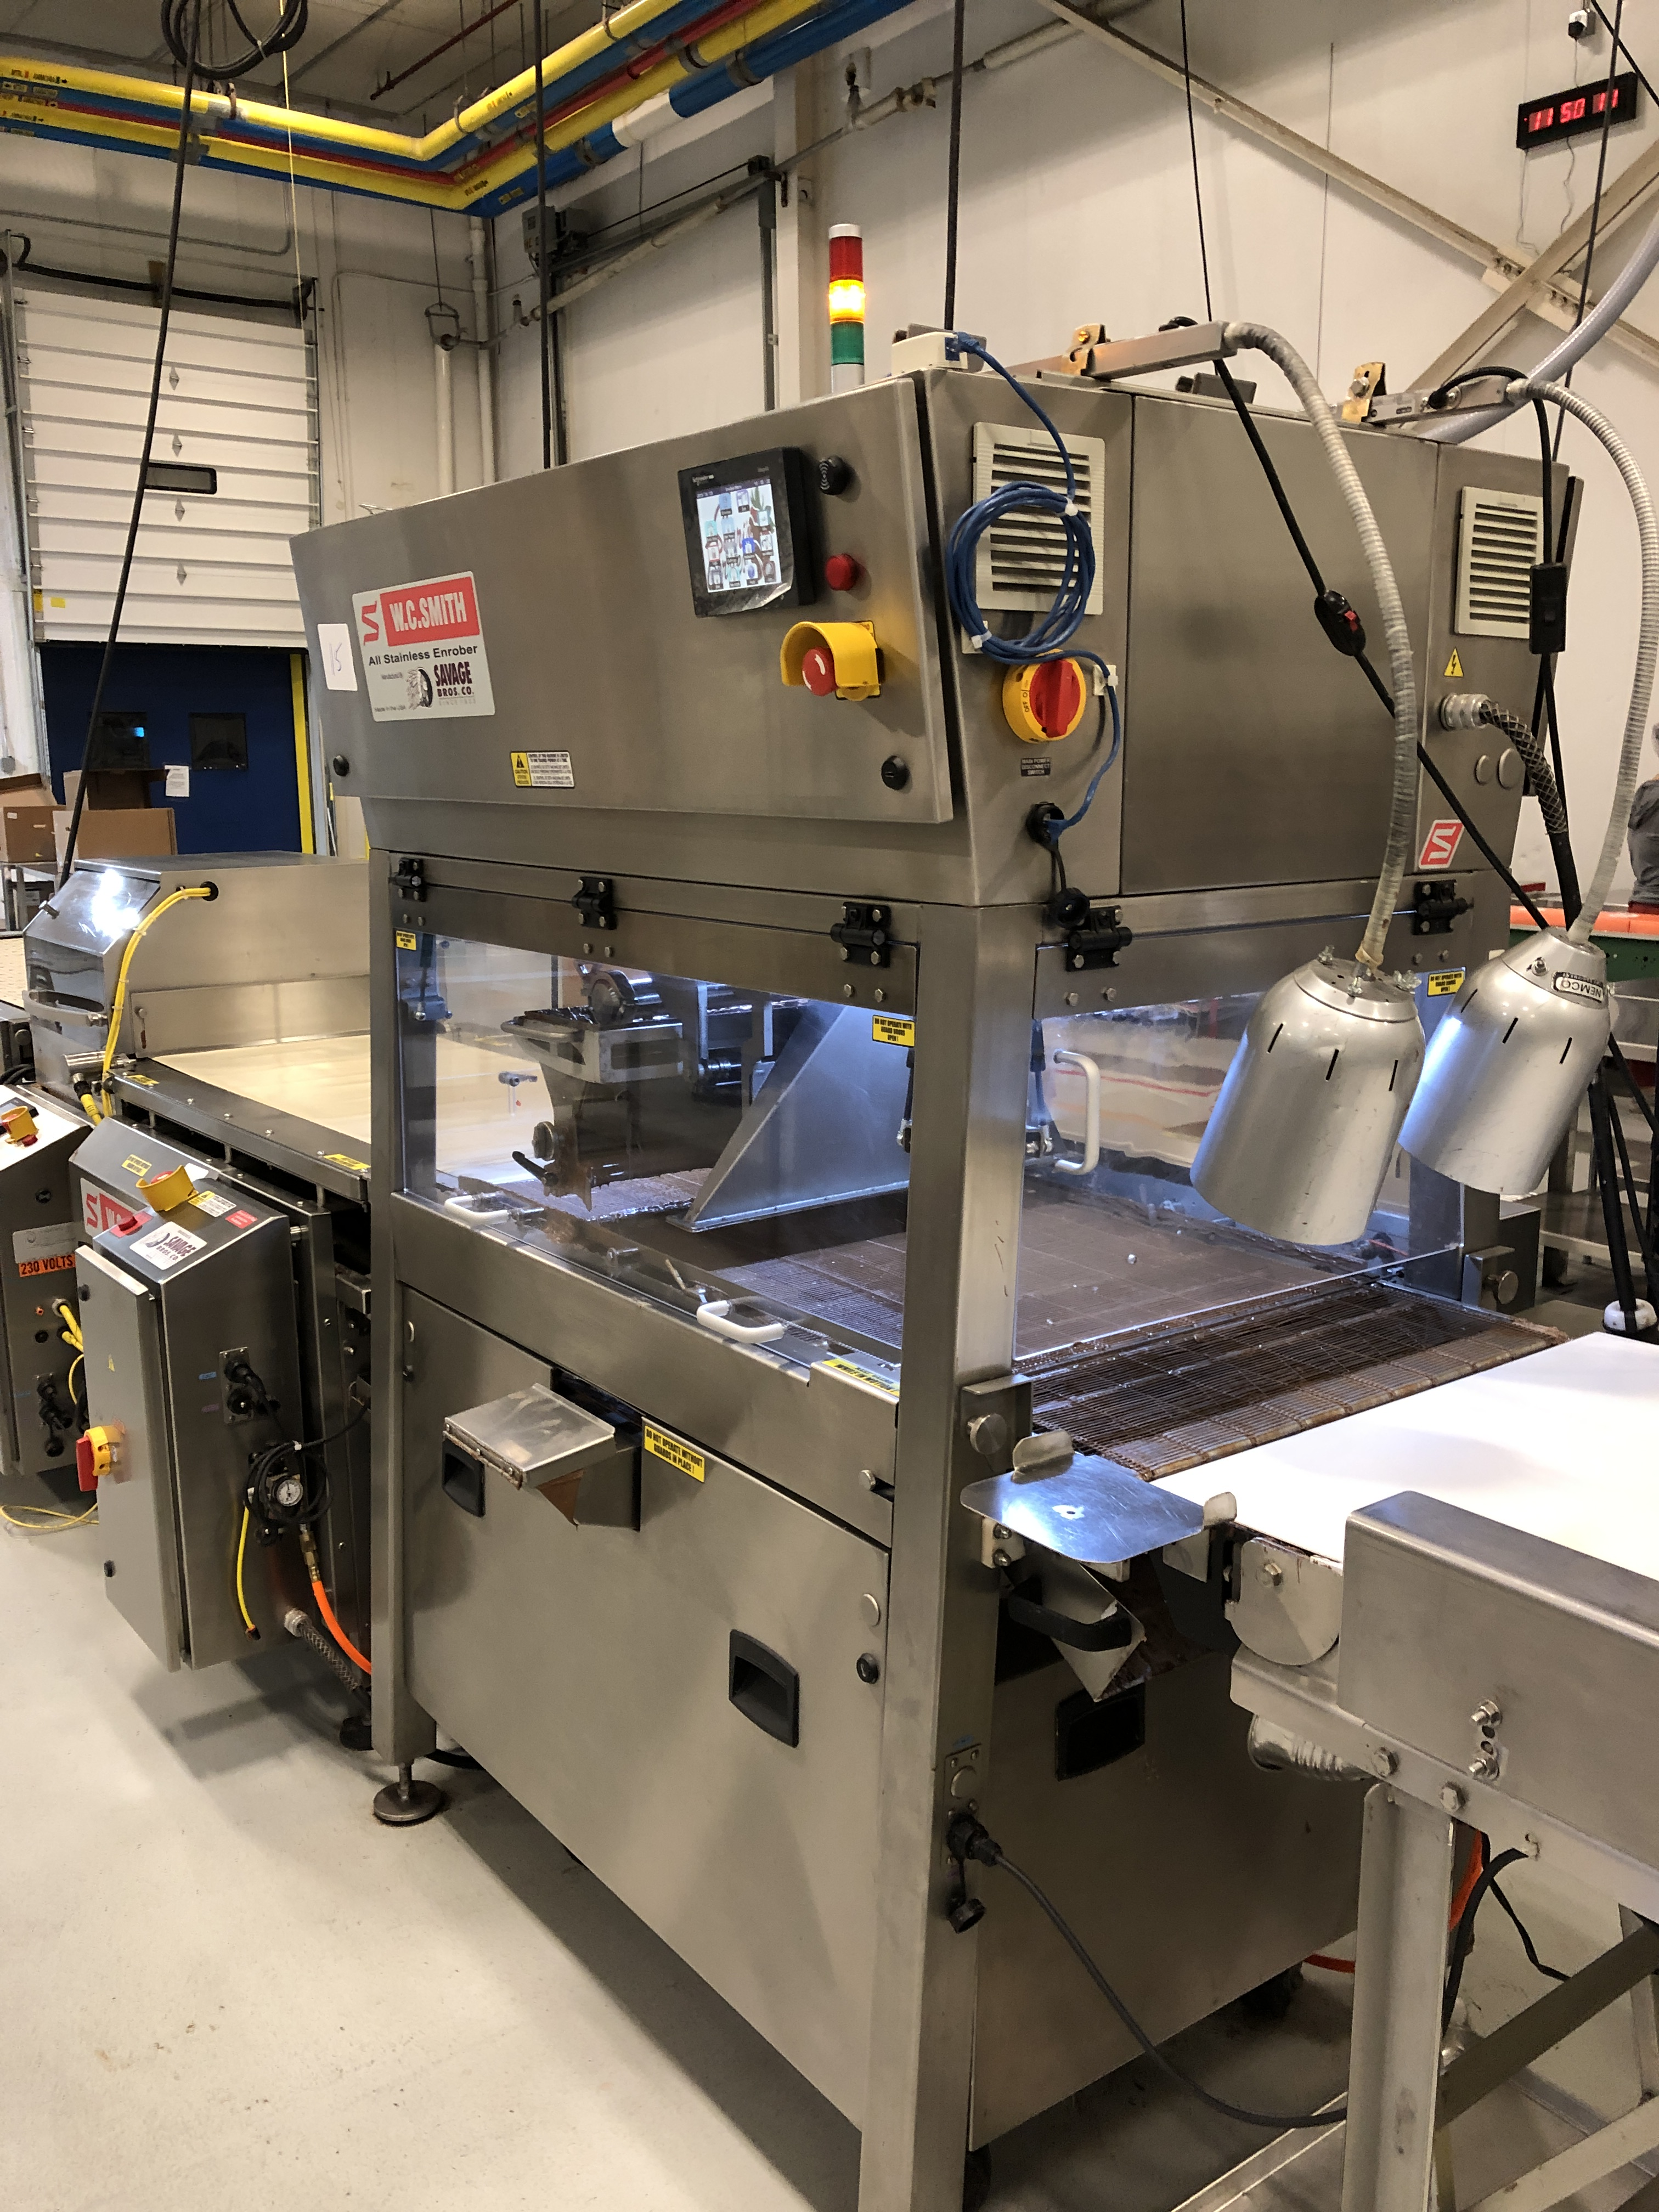 """Lot 12 - Smith 24"""" Stainless Steel Enrobing line – New 2013 - Smith model 5224-49 8-ft long Stainless Steel"""